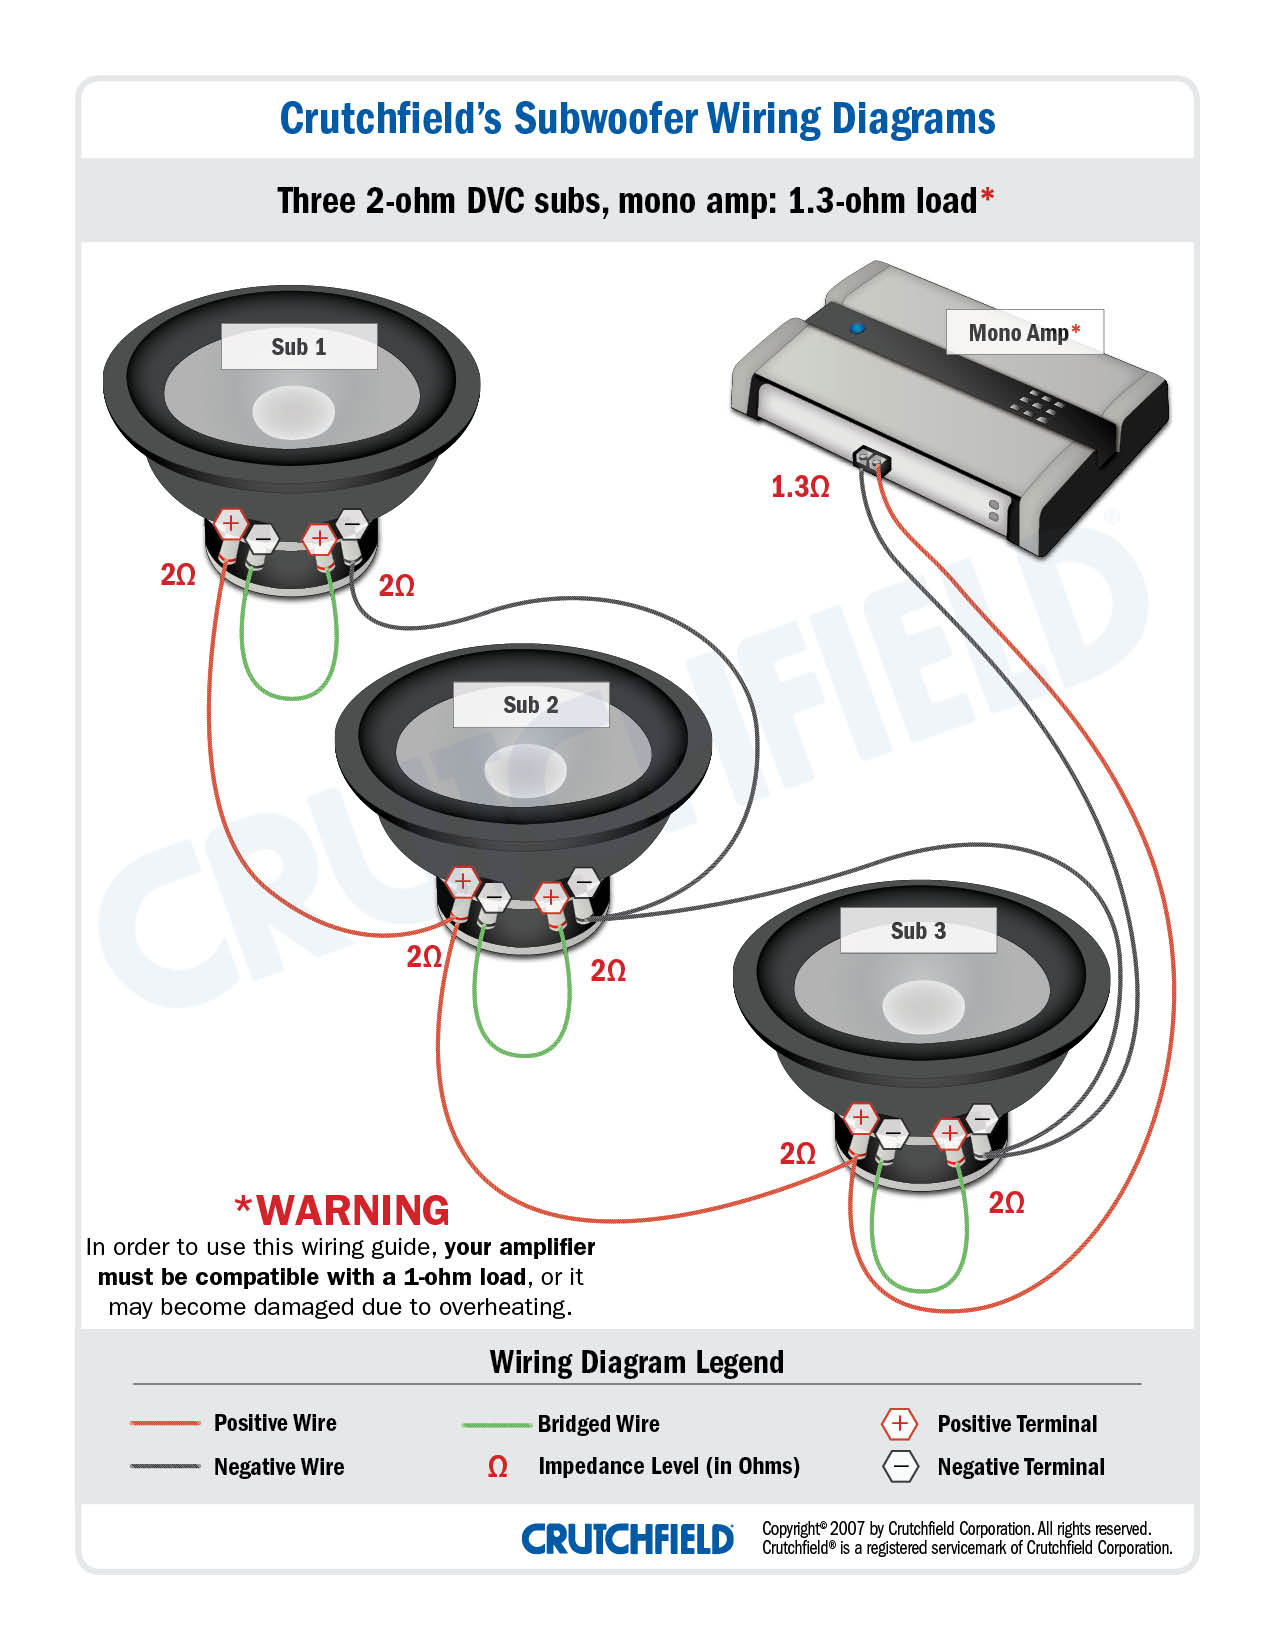 6 subwoofer wiring diagram. 6. wiring diagram instructions, Wiring diagram